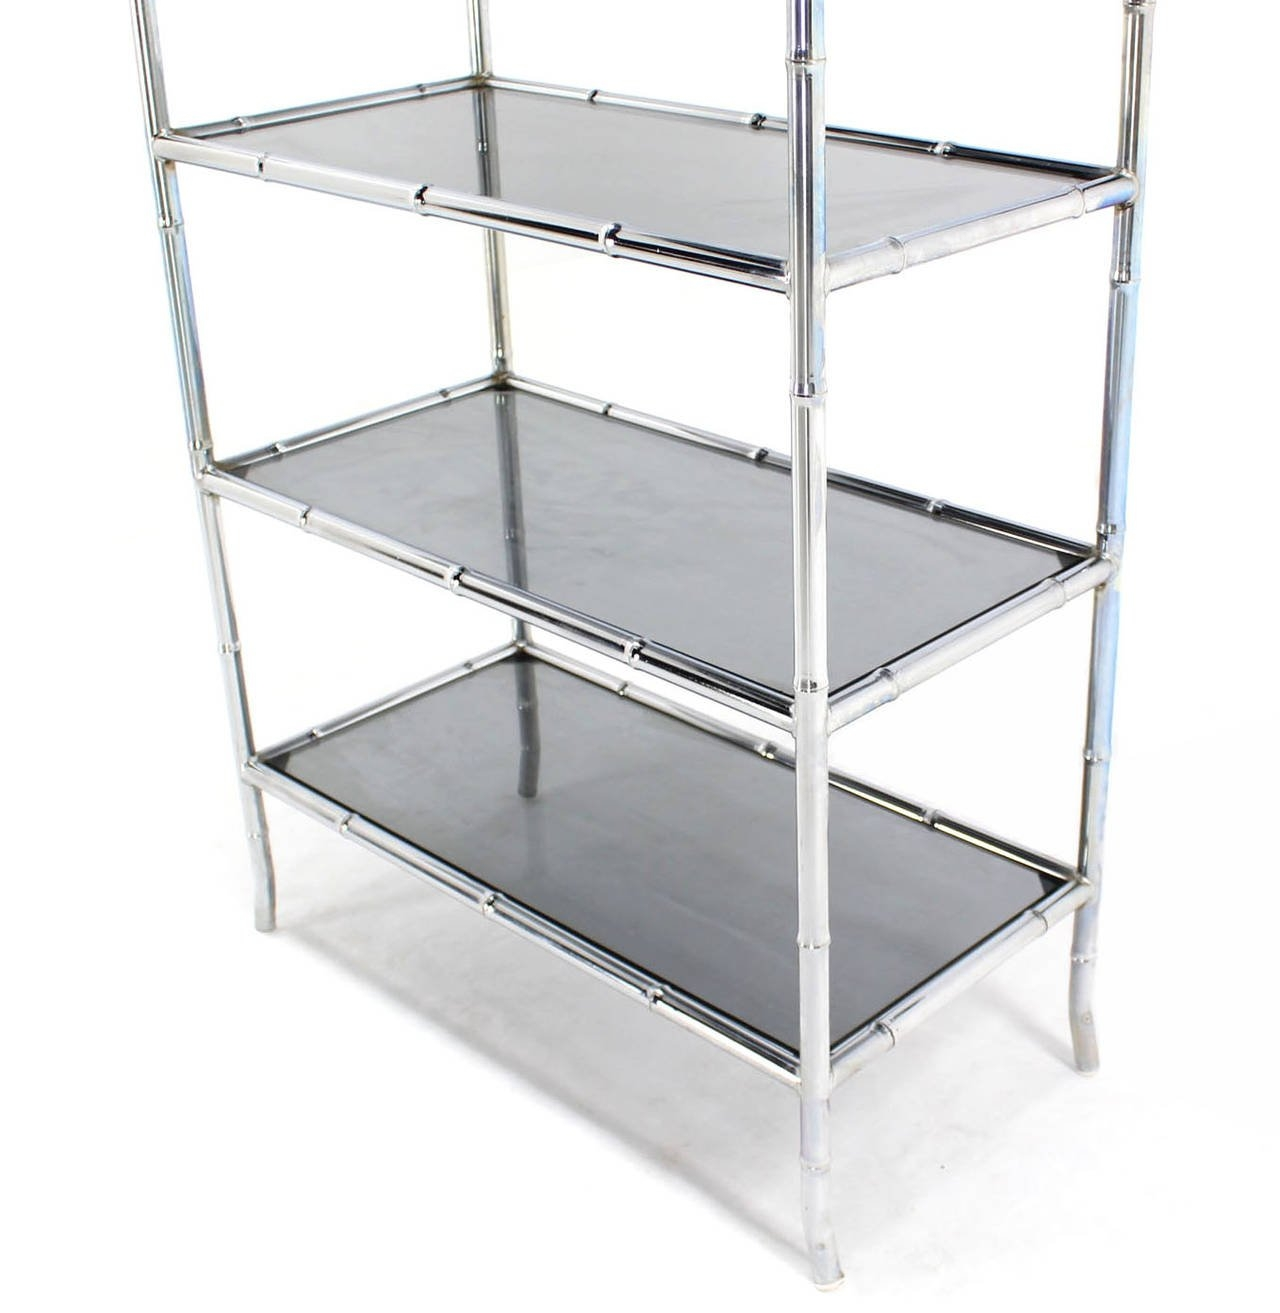 Chrome Faux Bamboo Etagere Unit With Smoked Glass Shelves At 1stdibs Throughout Smoked Glass Shelf (View 2 of 12)